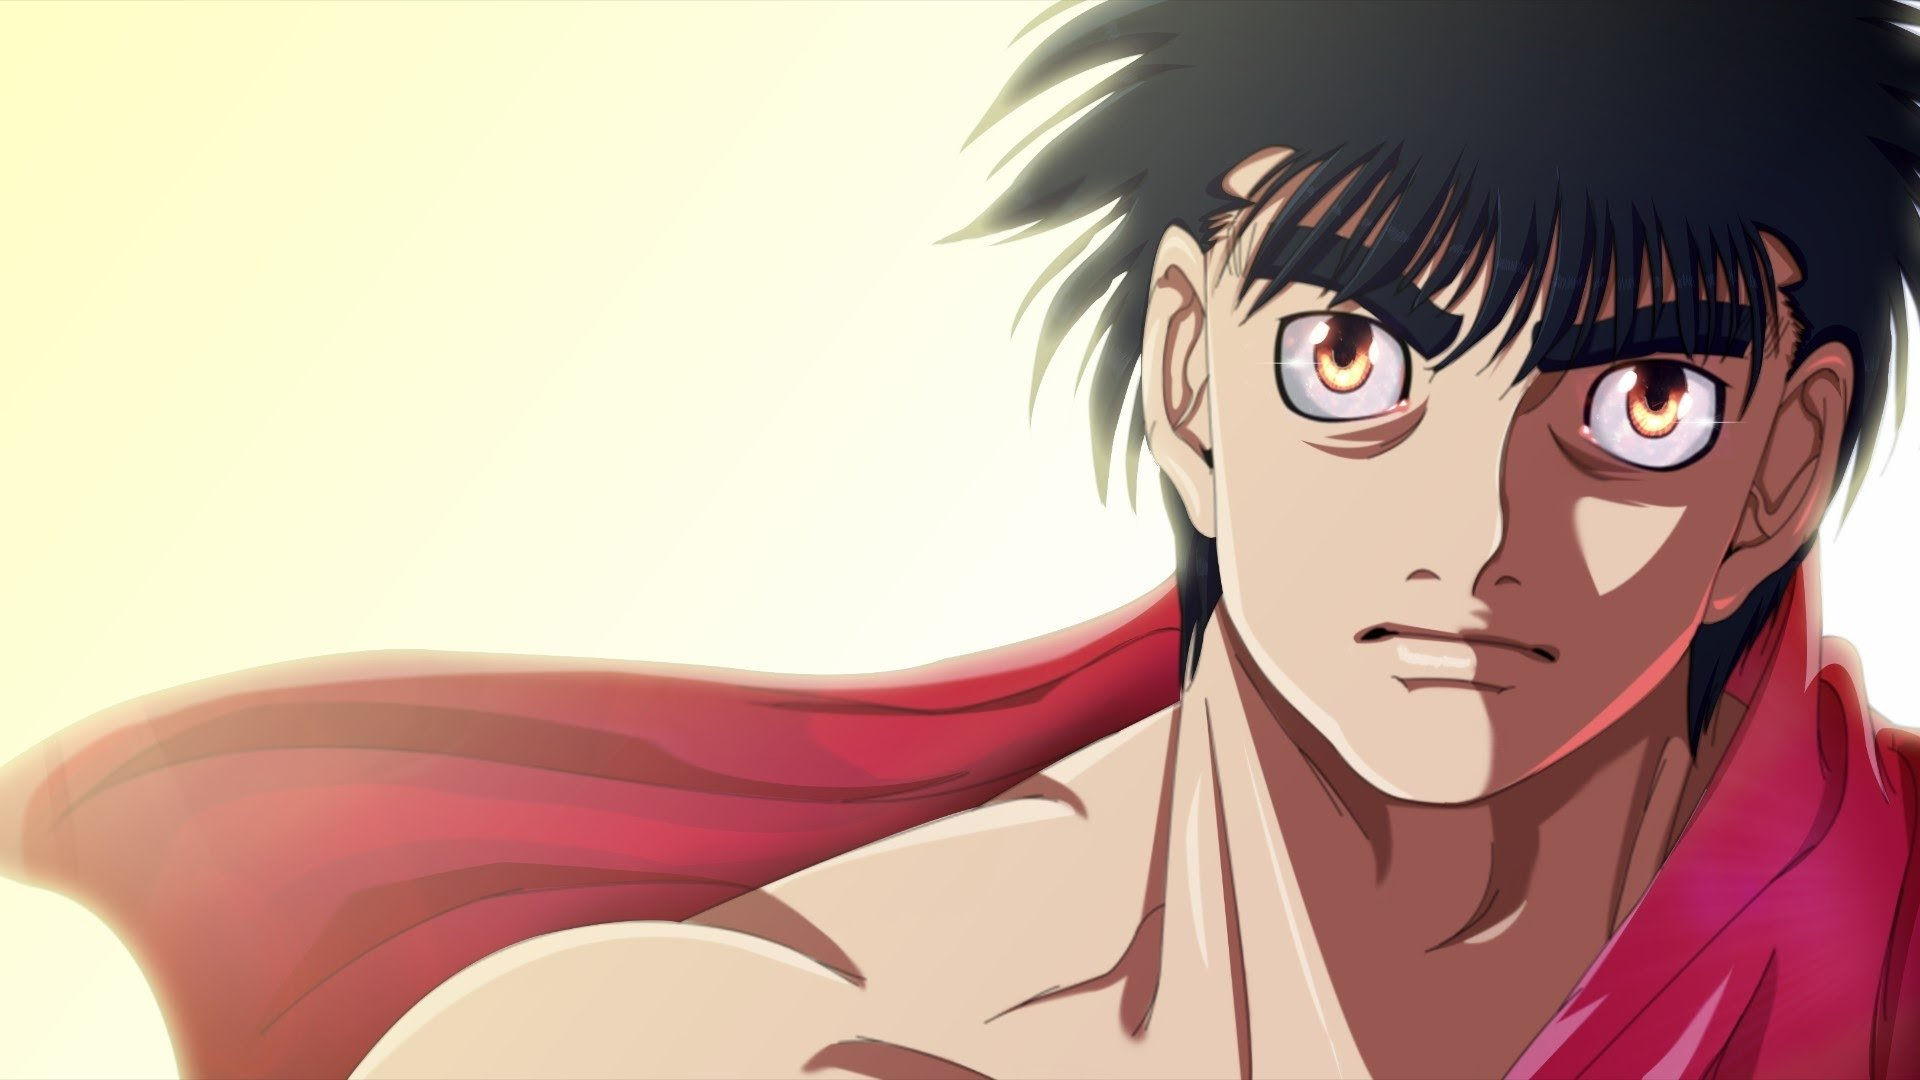 10 Hajime No Ippo Hd Wallpapers Background Images Wallpaper Abyss